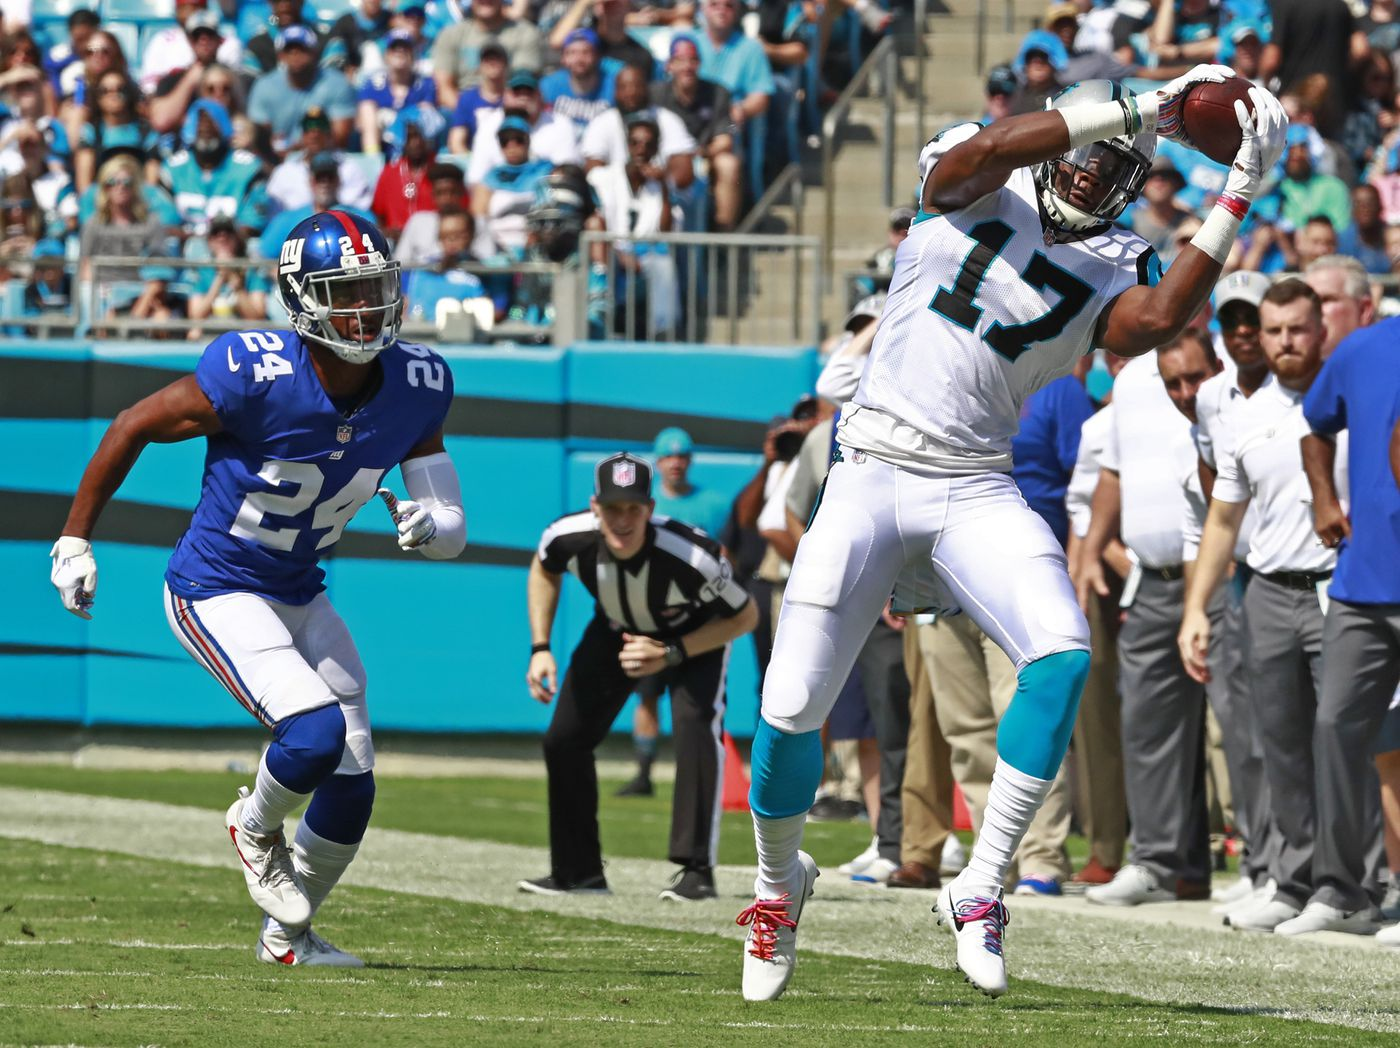 b11667f350c Carolina Panthers' Devin Funchess (17) catches a pass as New York Giants'